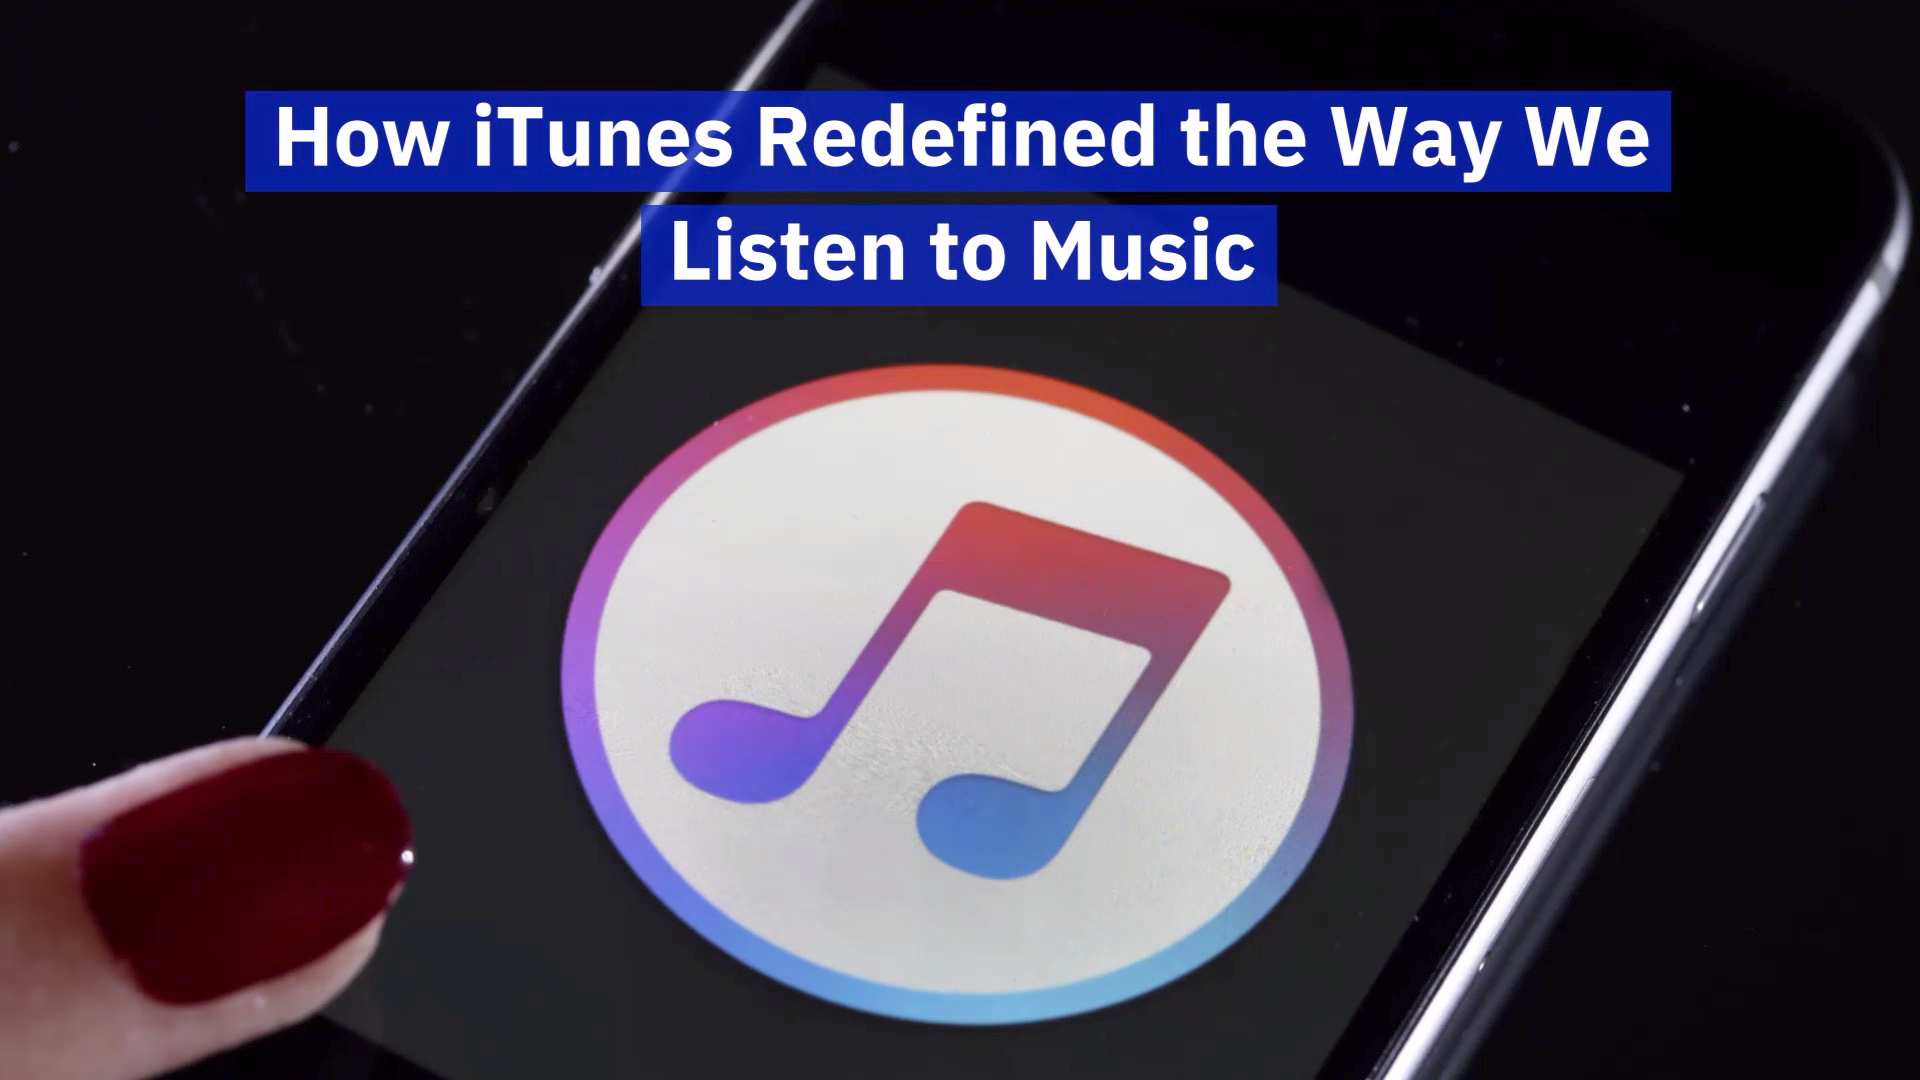 iTunes Leaves A Lasting Impression